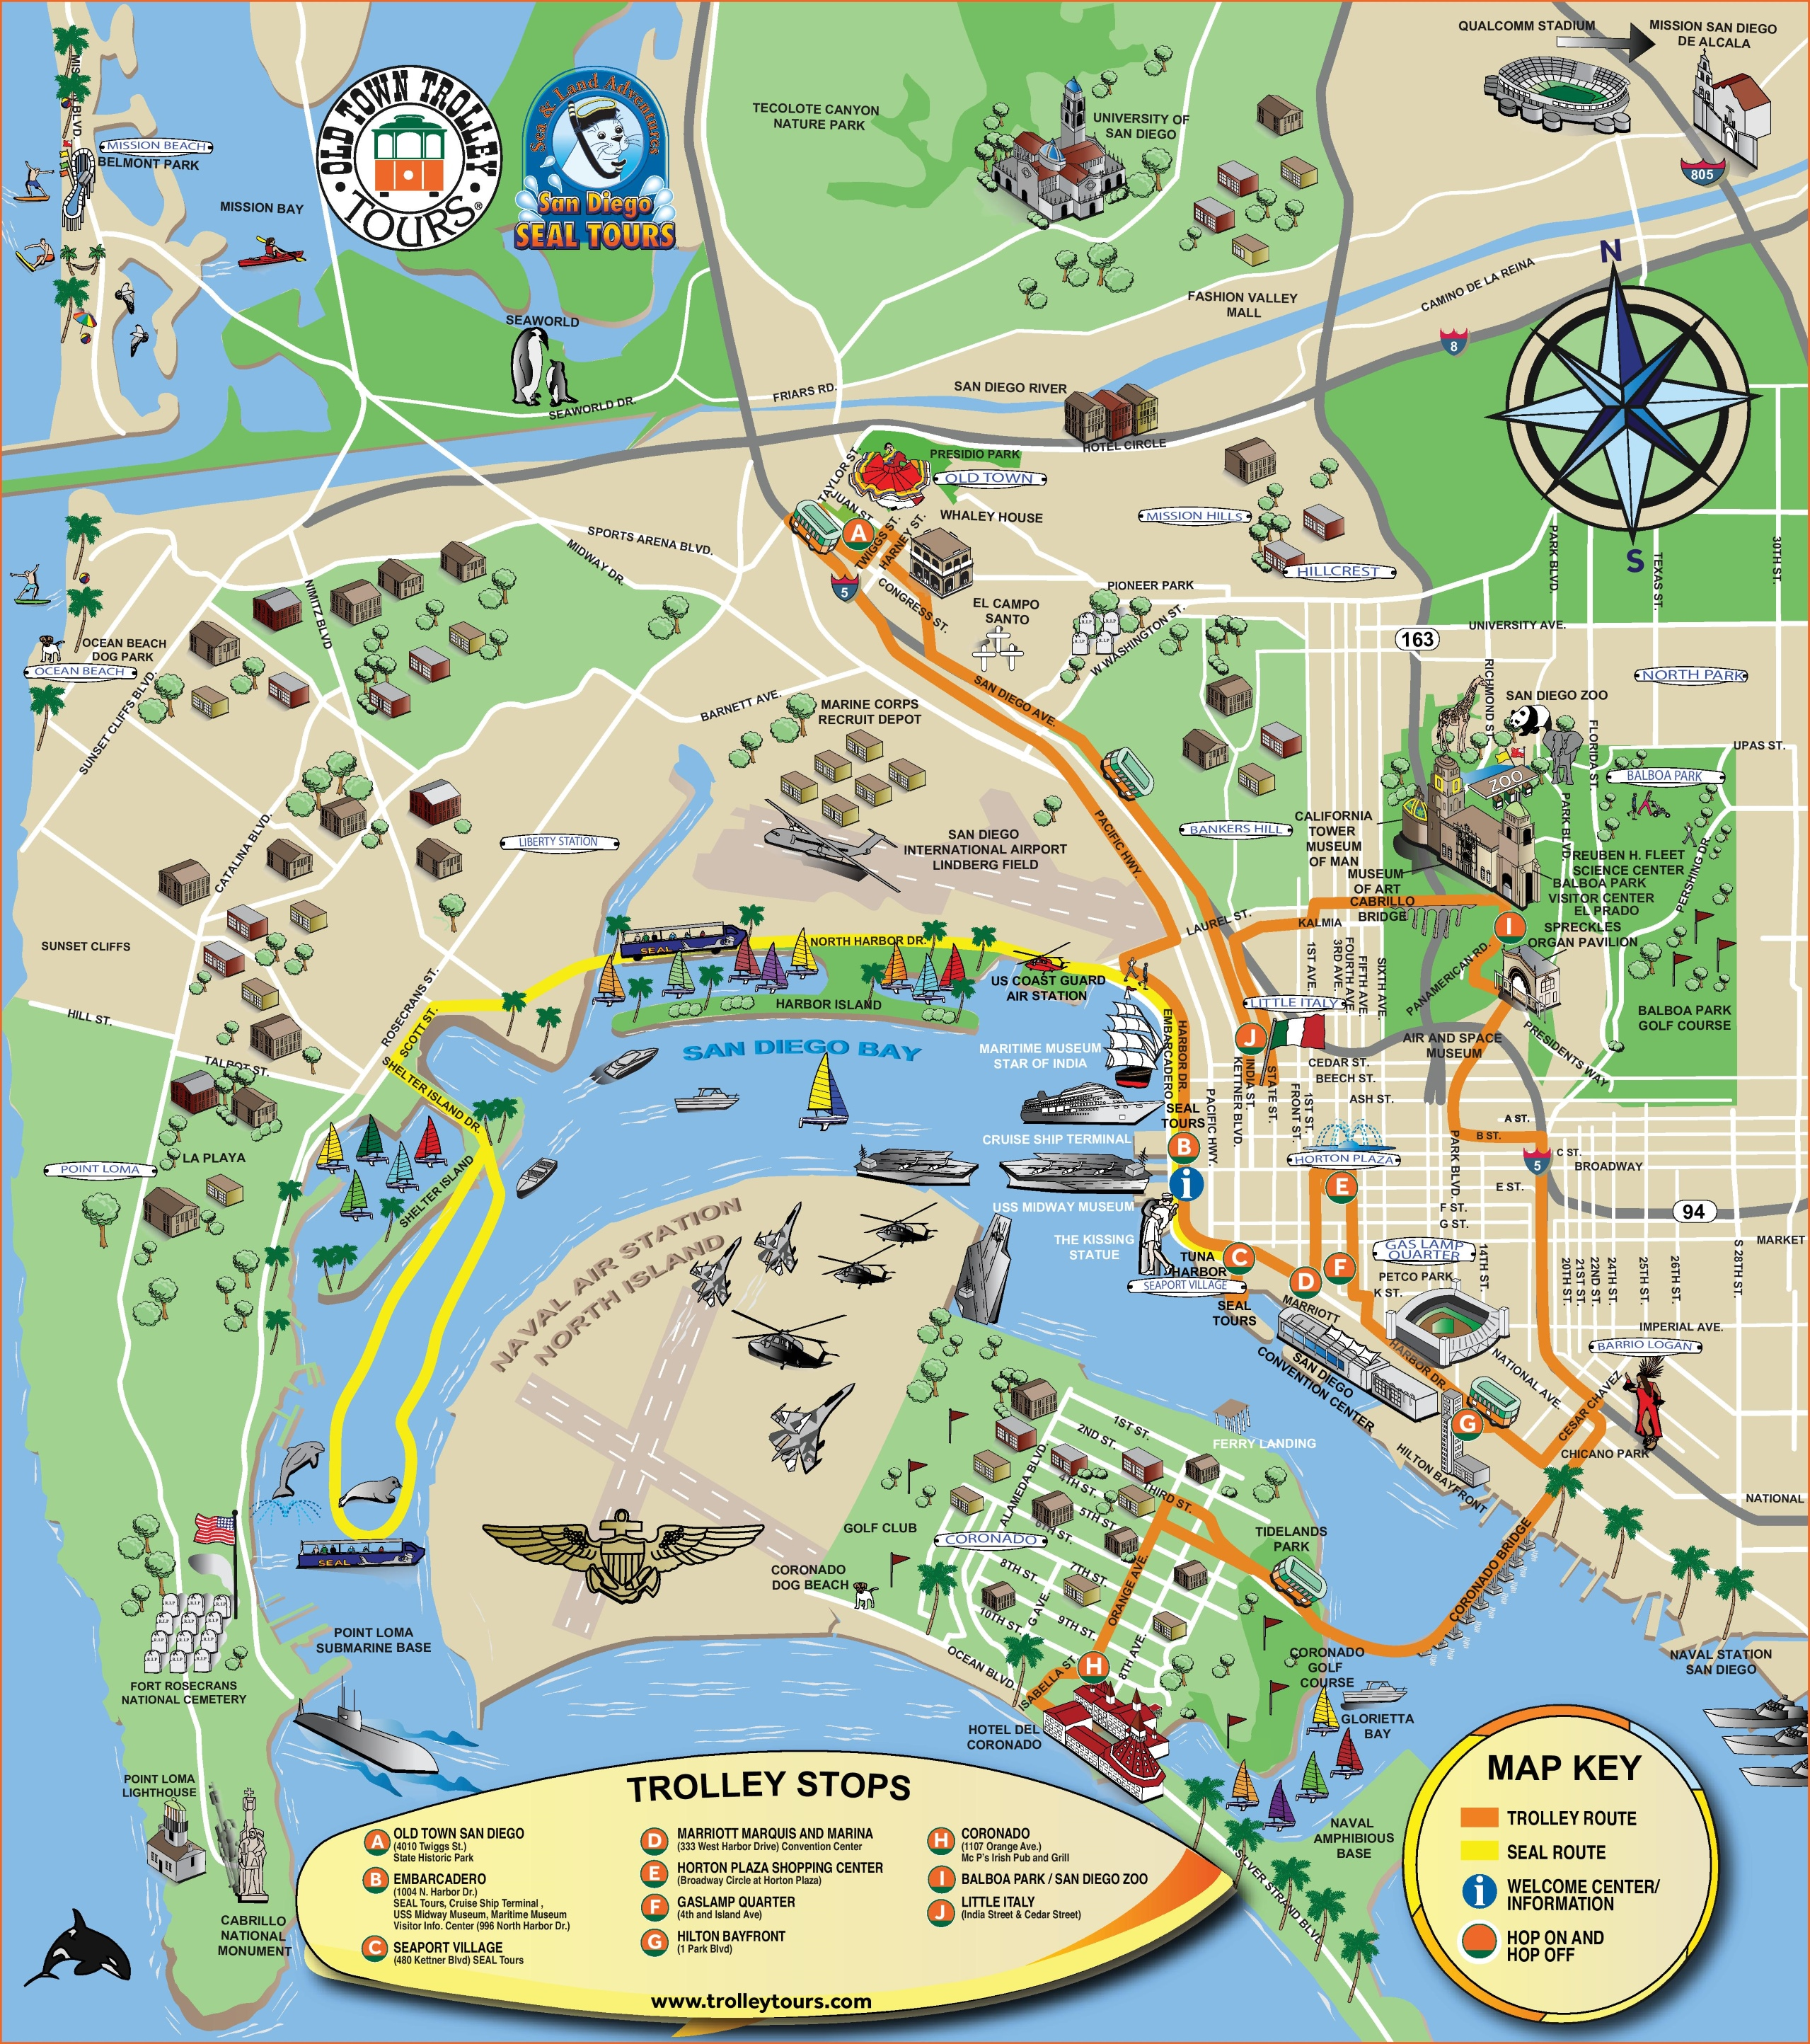 San Diego tourist attractions map – Phoenix Tourist Attractions Map